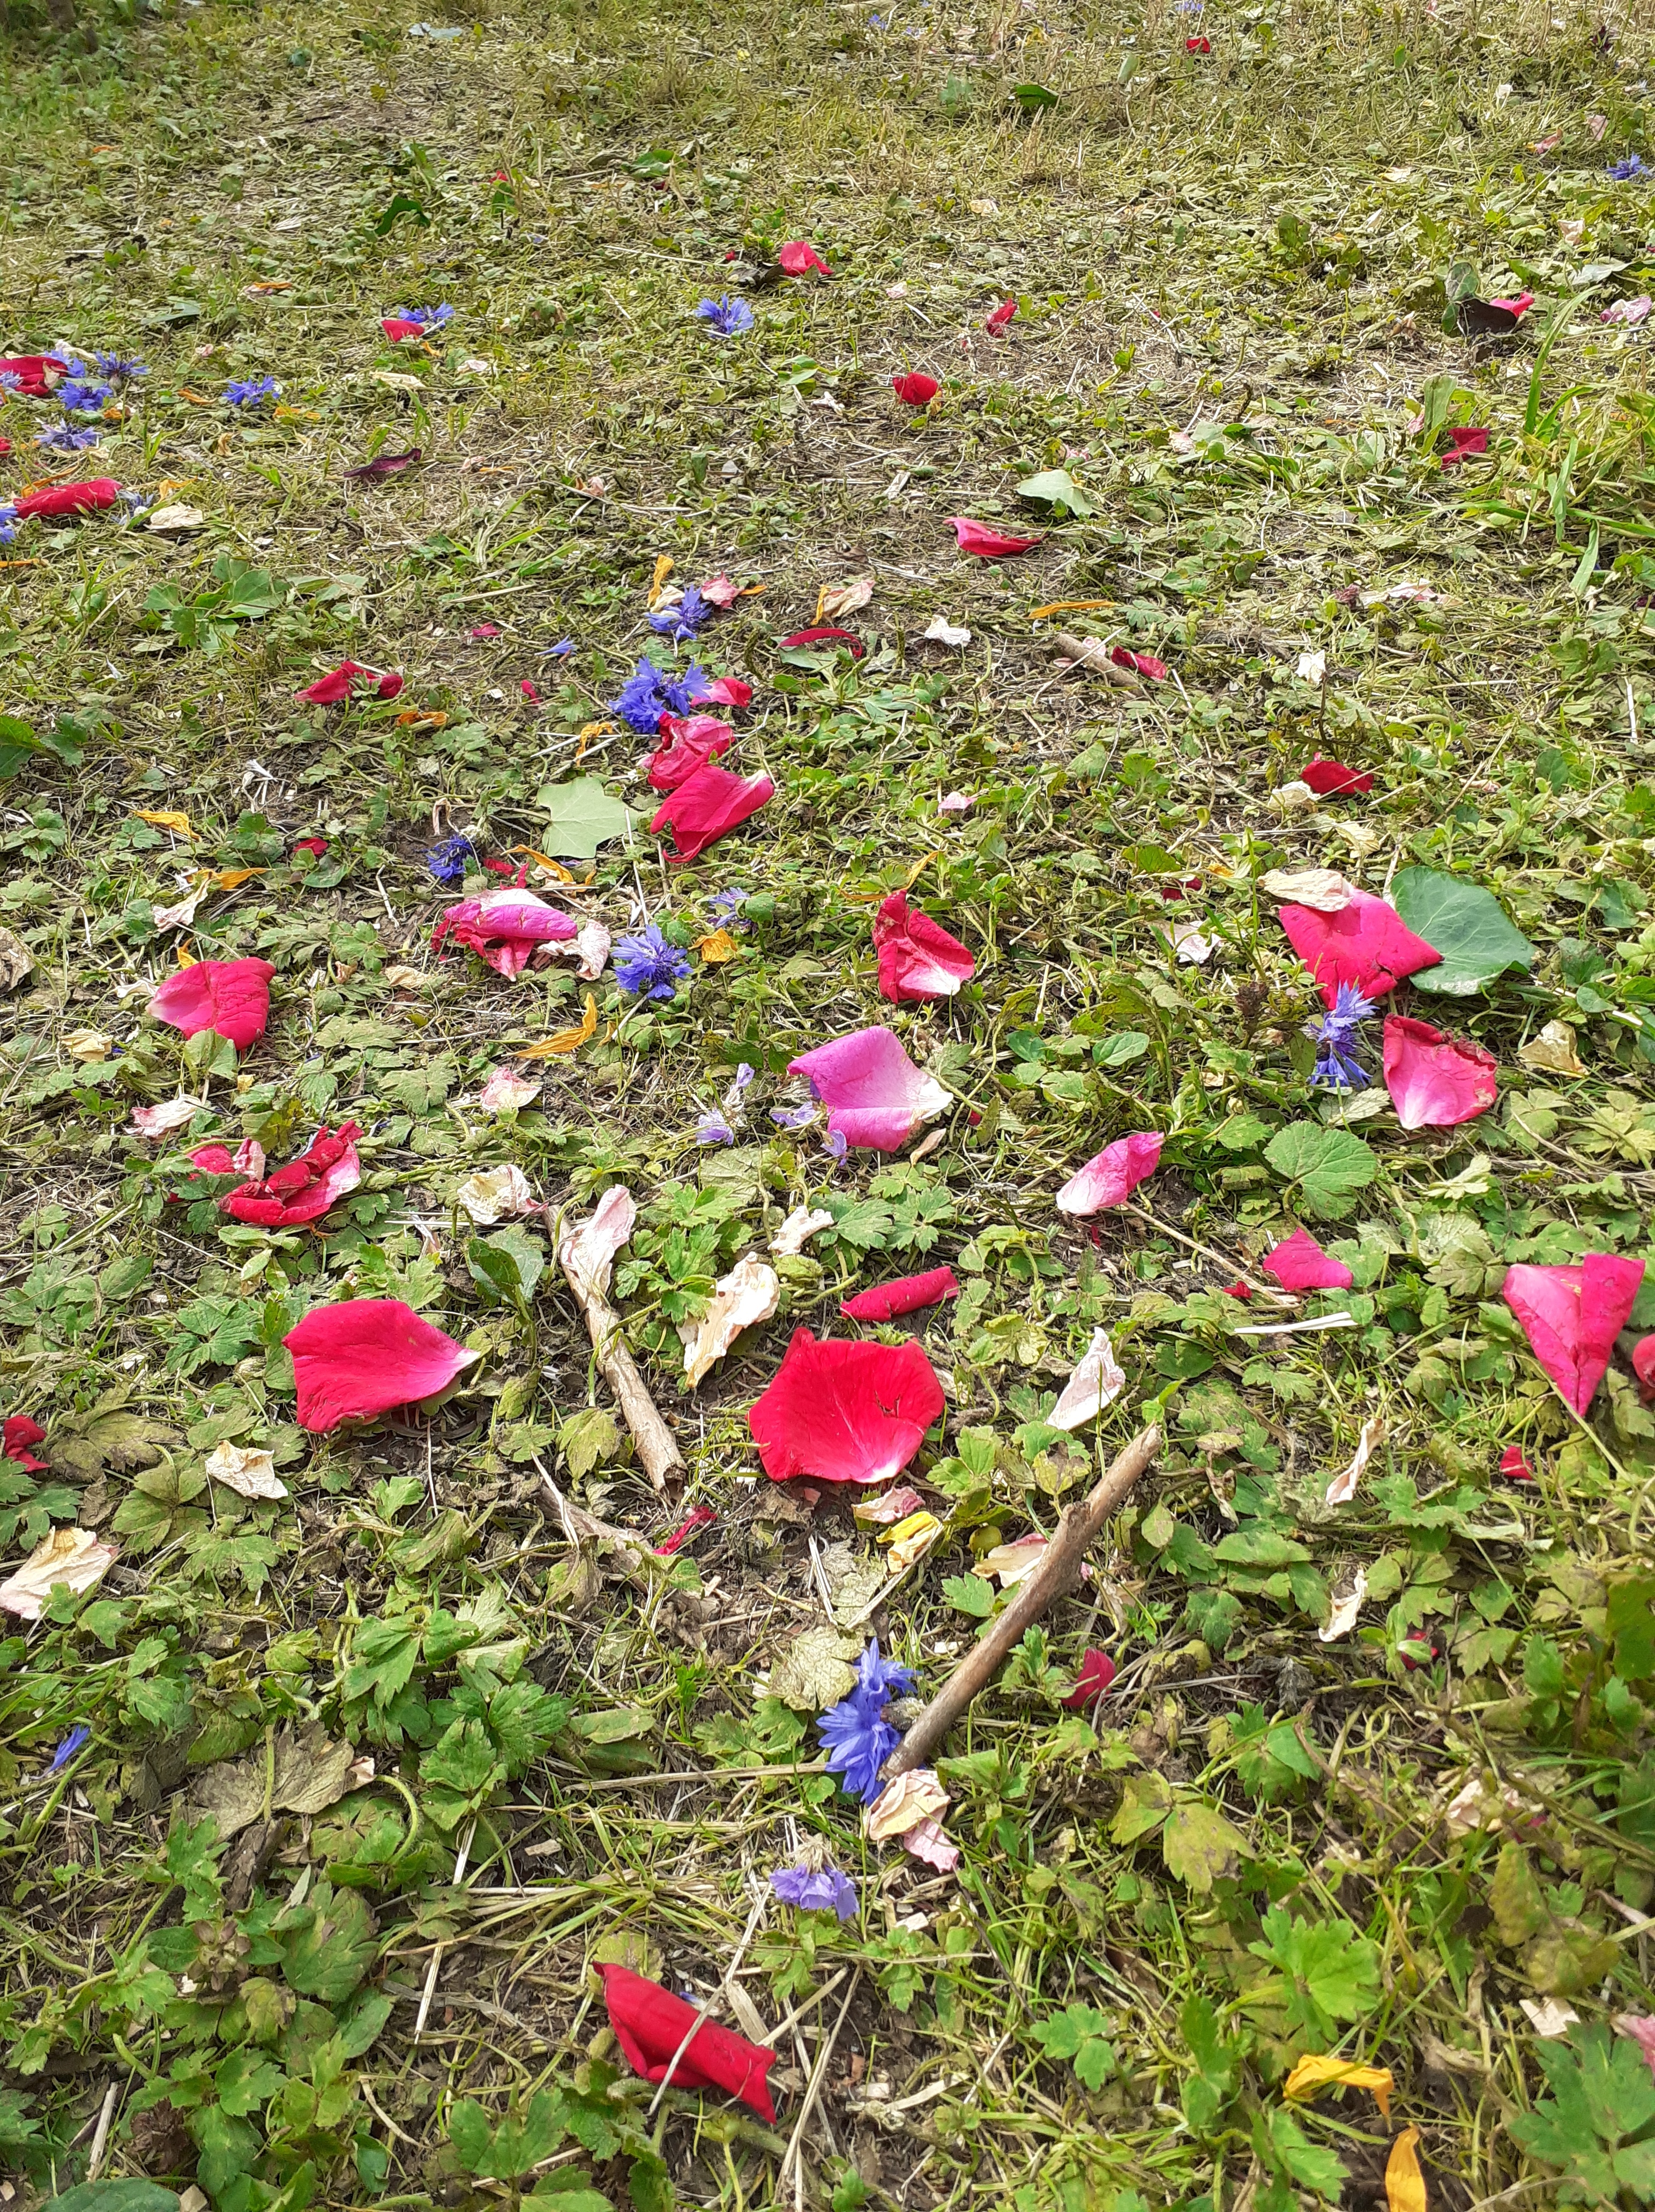 colourful petals of red, pink and blue are scattered across a mossy, grassy ground